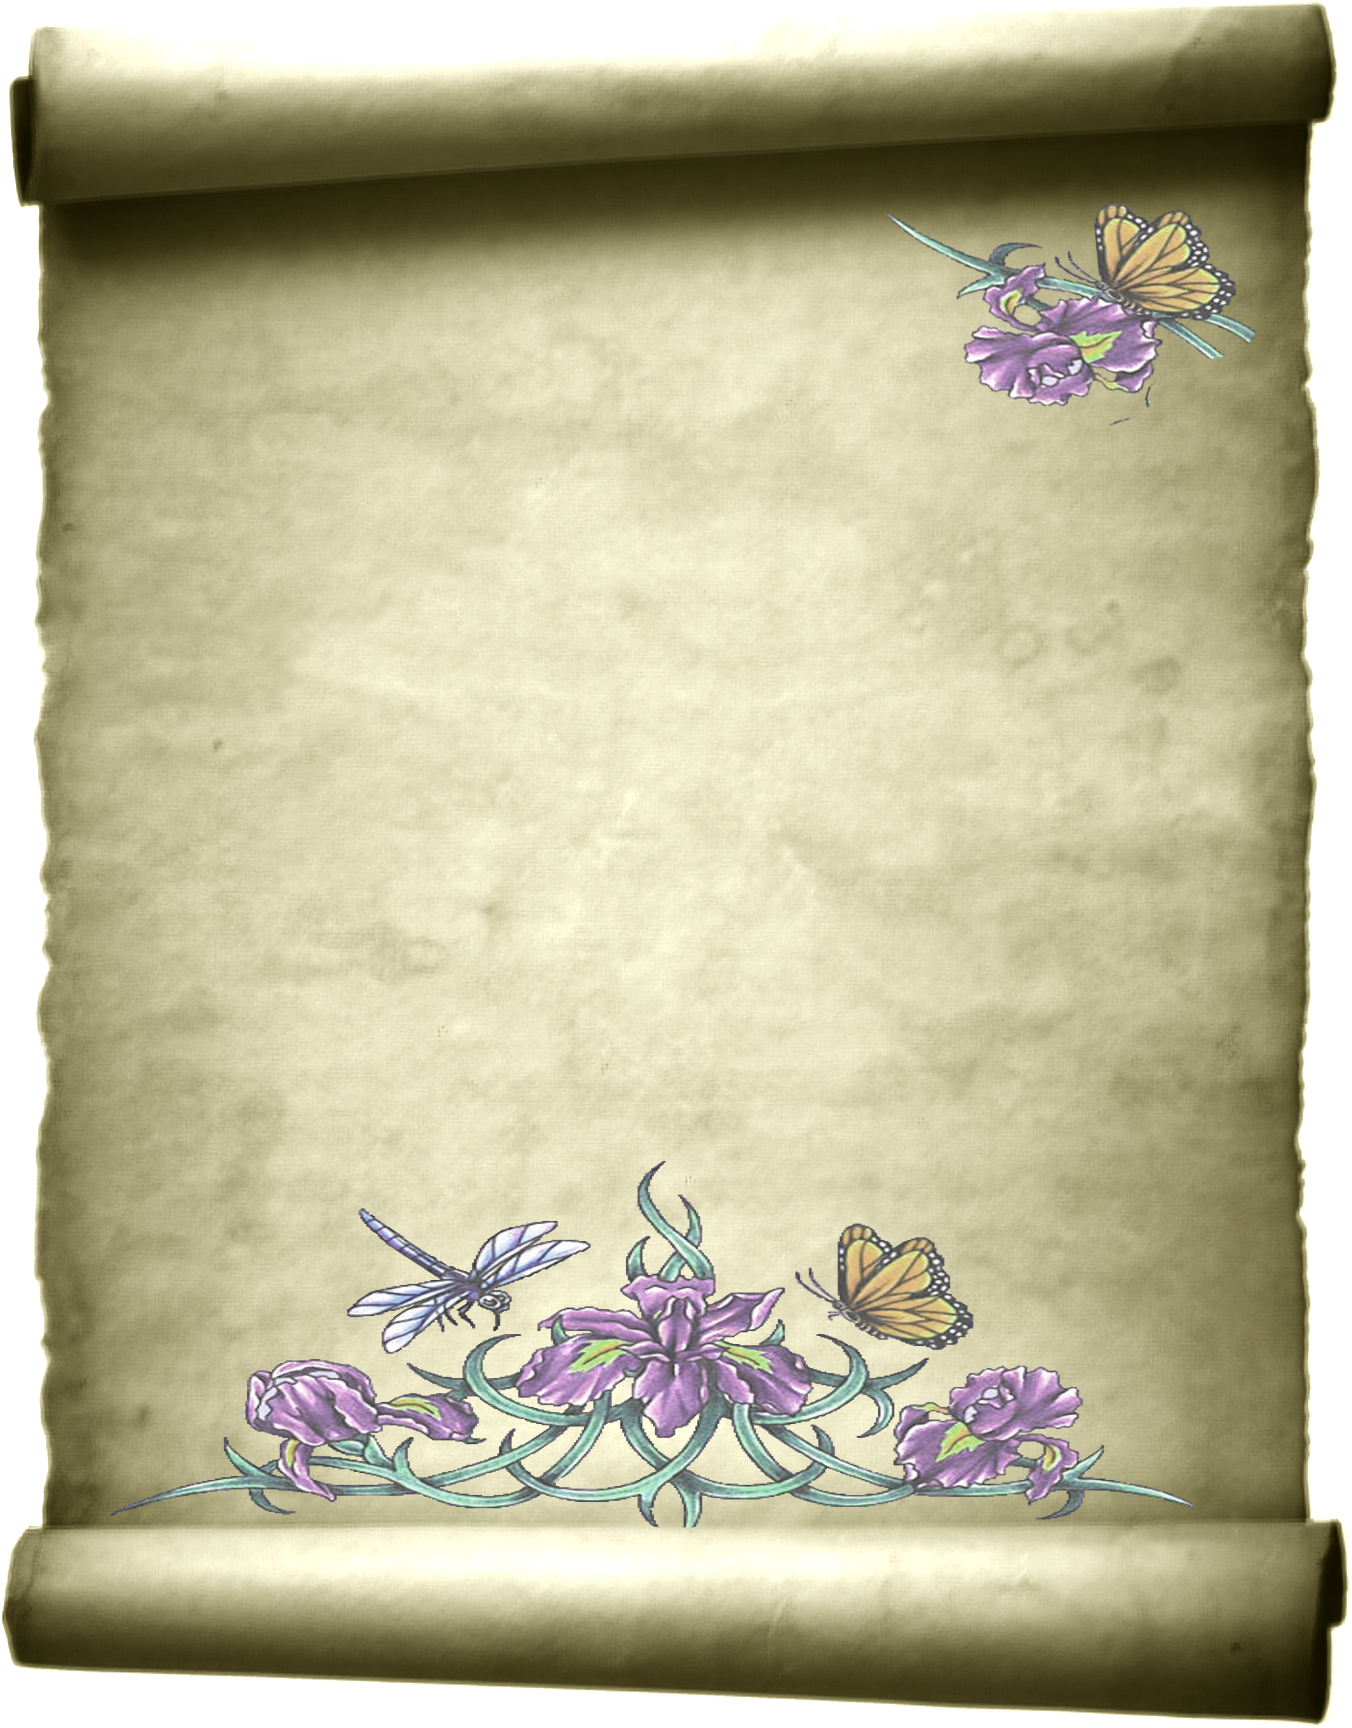 Rolled Parchment By Angelmoon17 On Deviantart